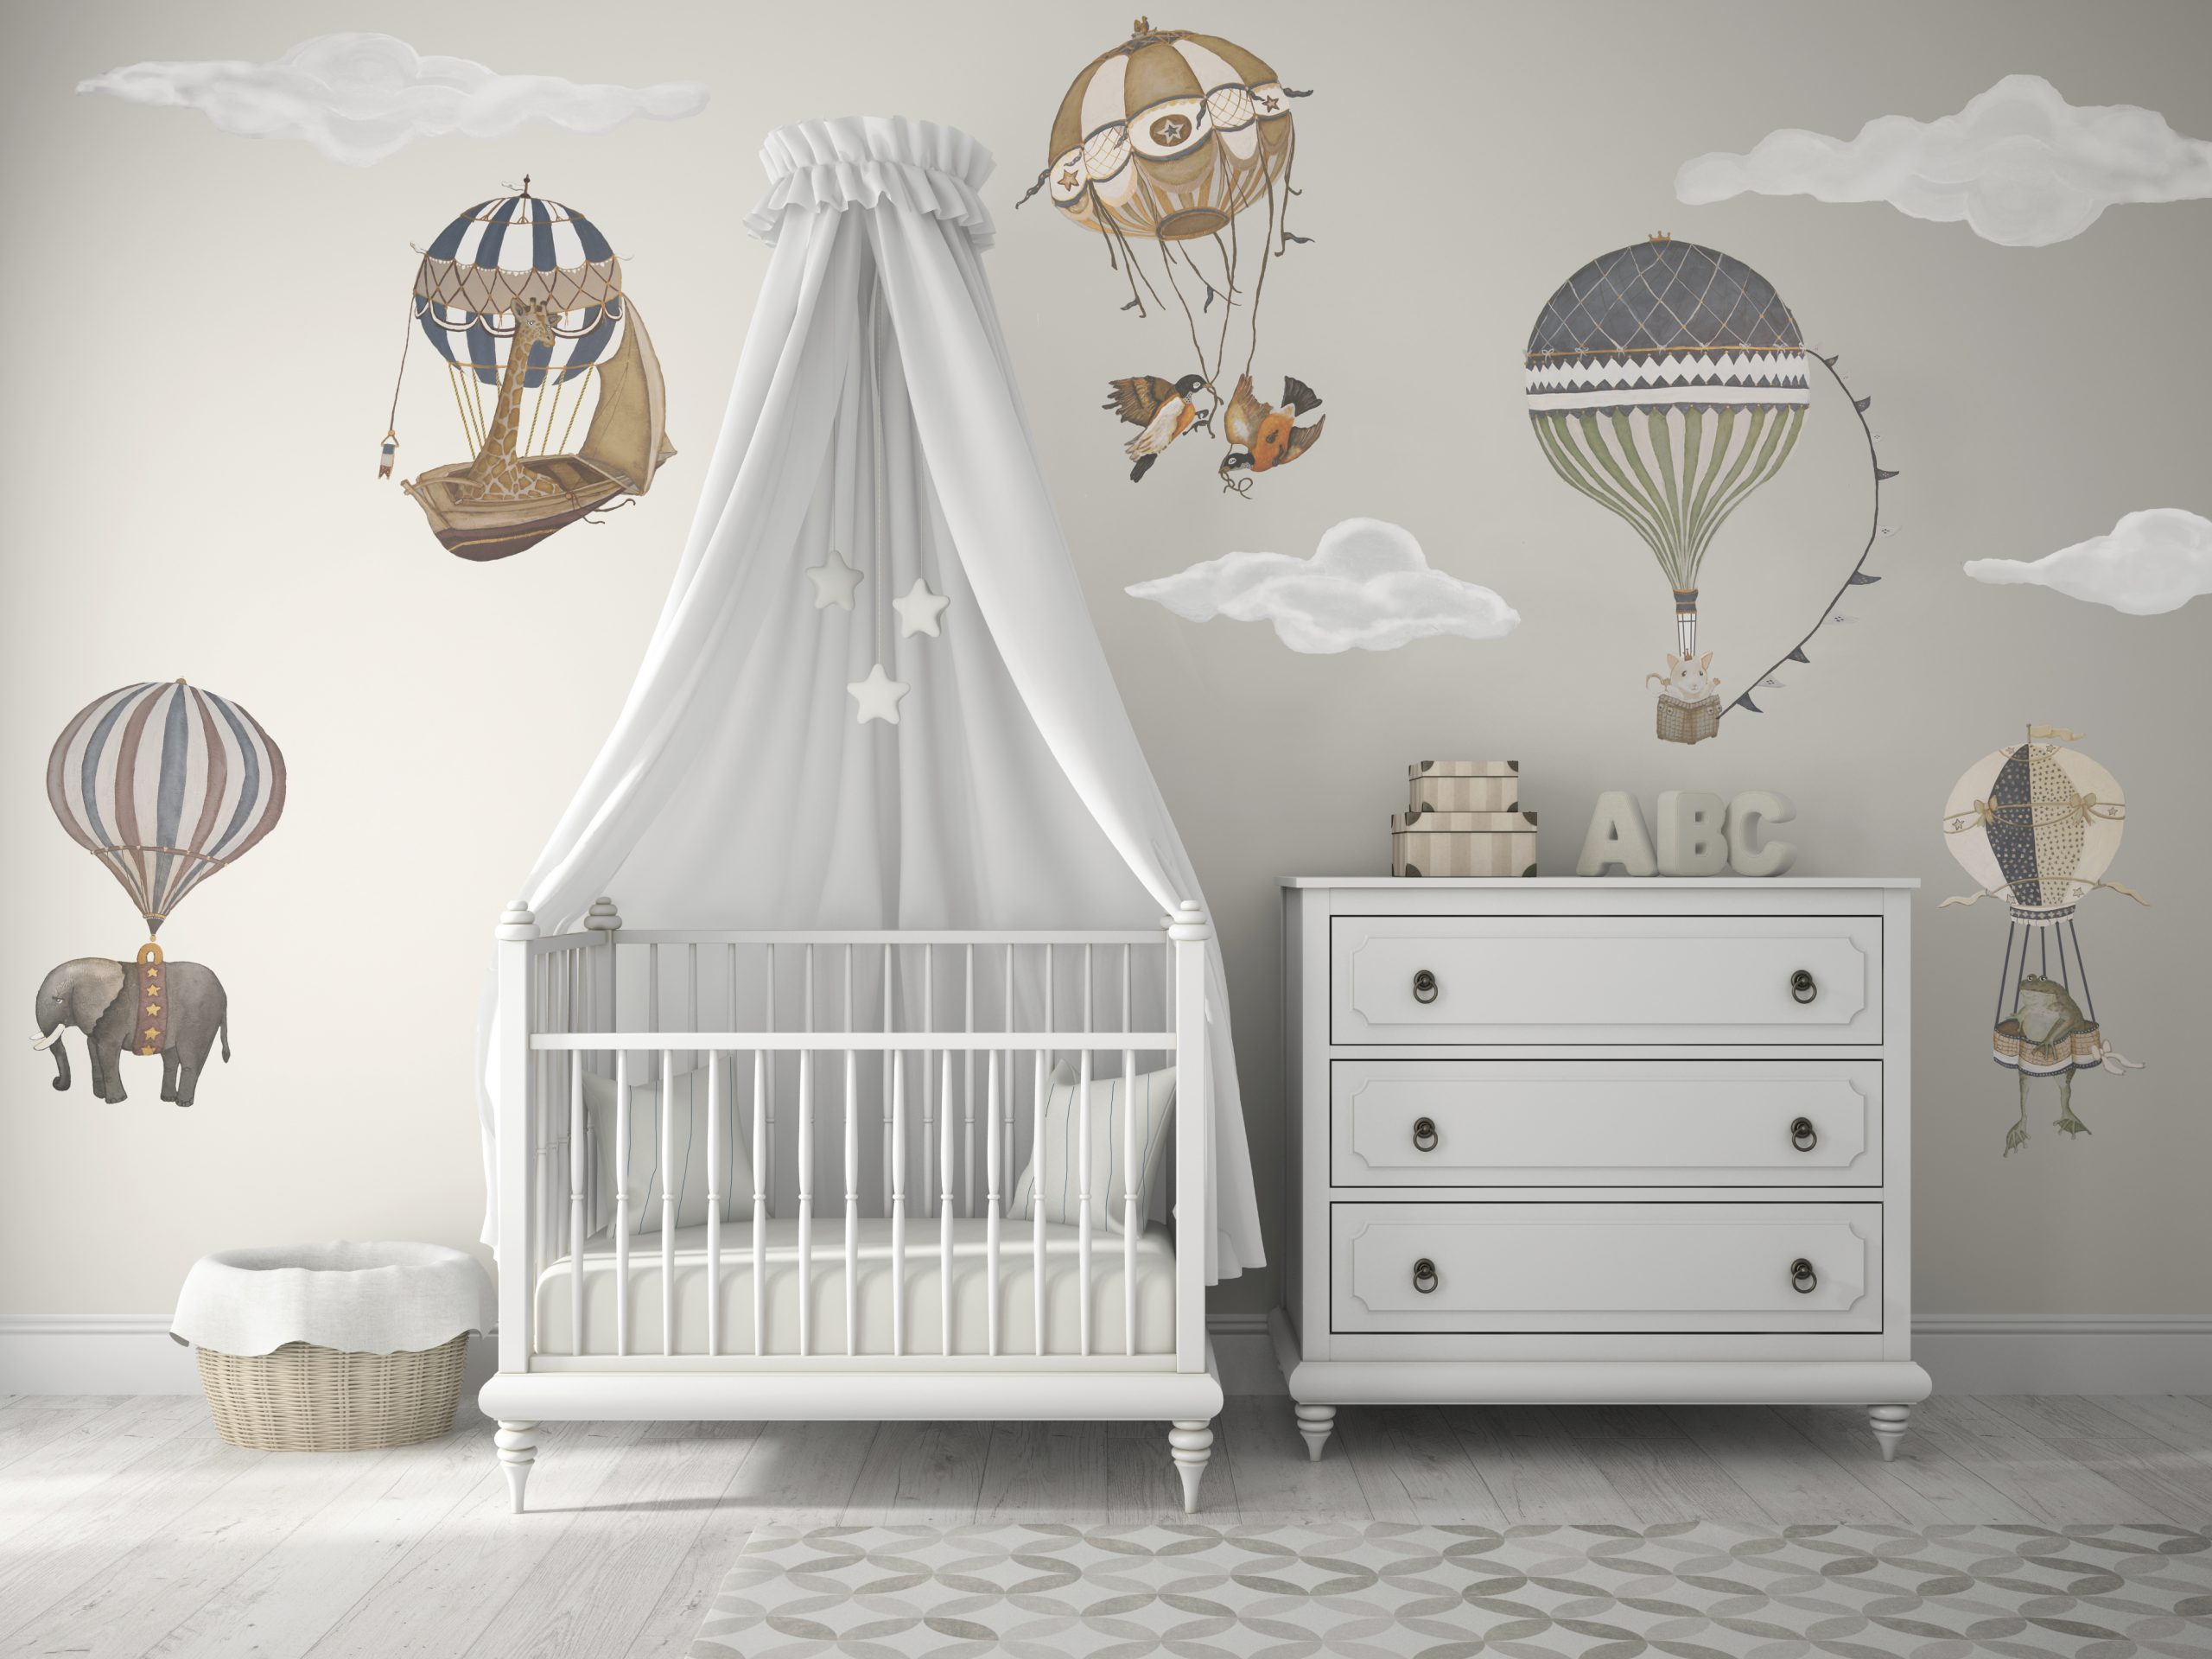 Vintage Hot Air Balloon wall decals